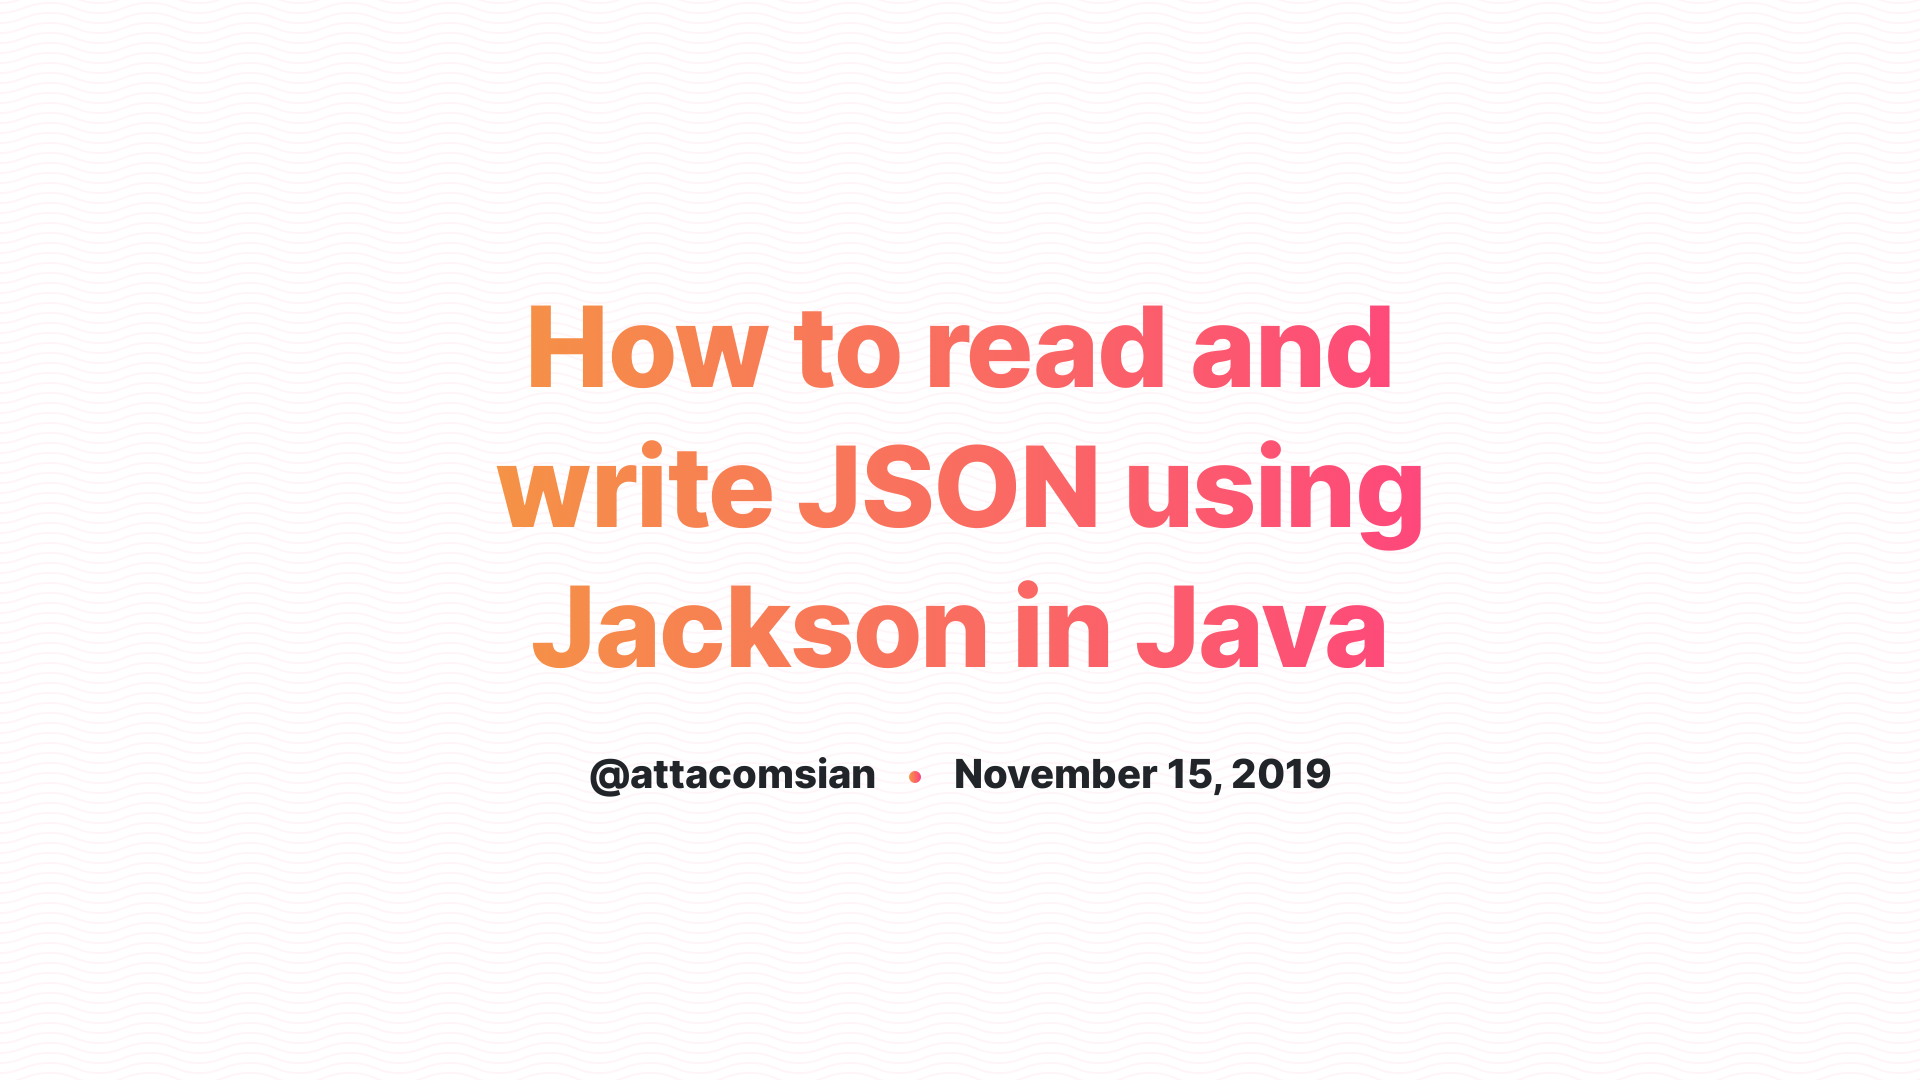 How to read and write JSON using Jackson in Java